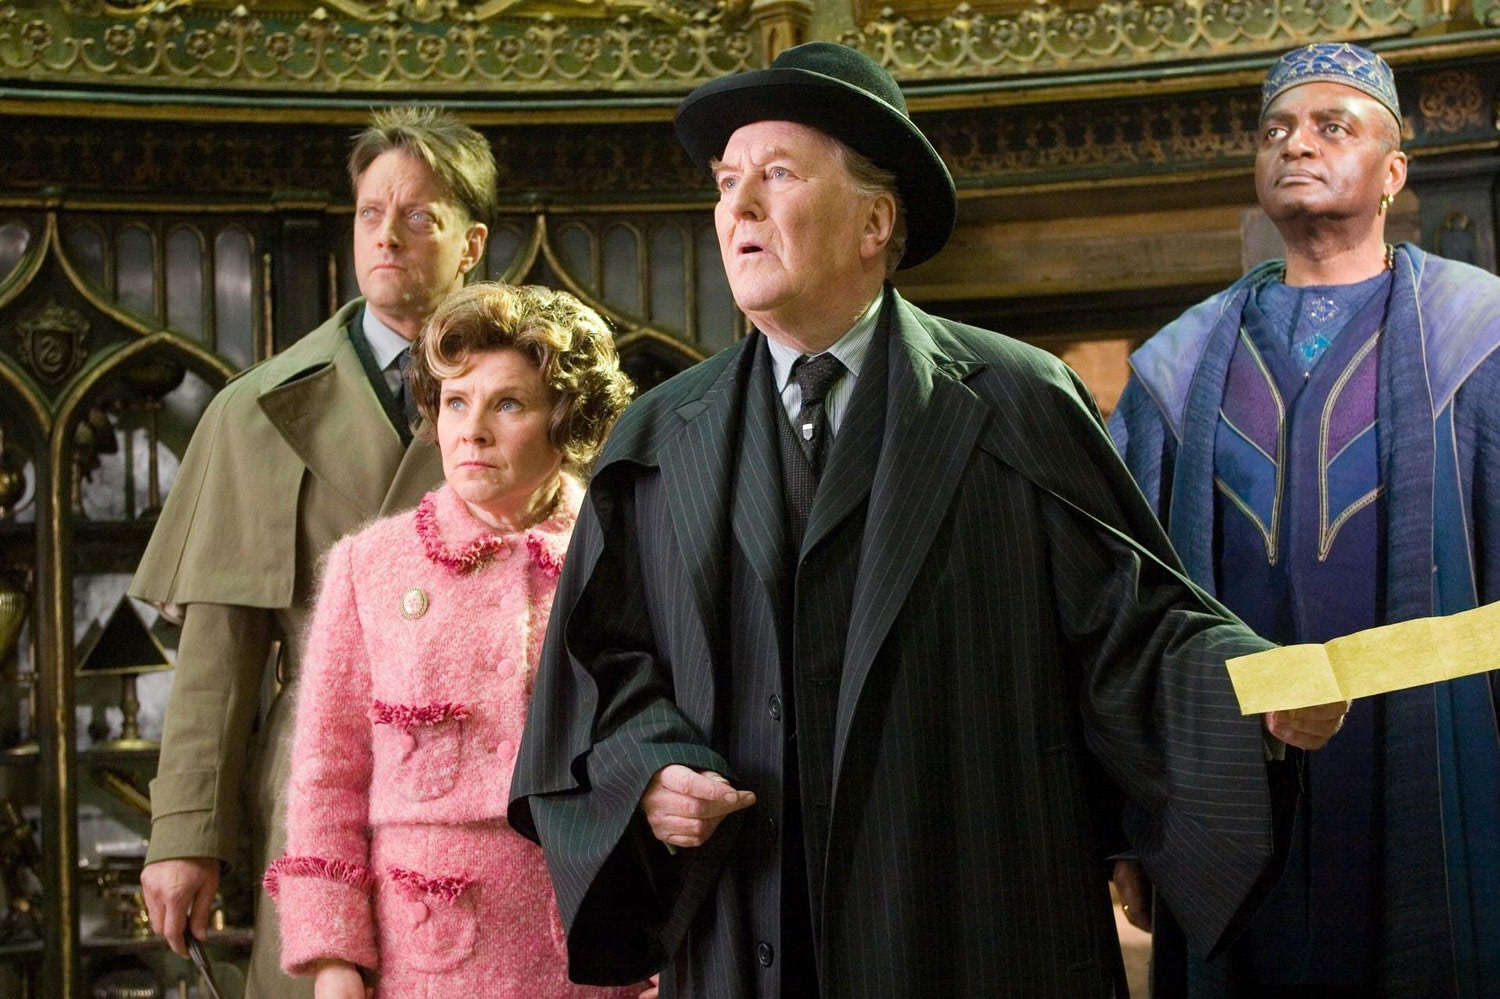 Dawlish, Umbridge, Fudge and Shacklebolt in Dumbledore's office